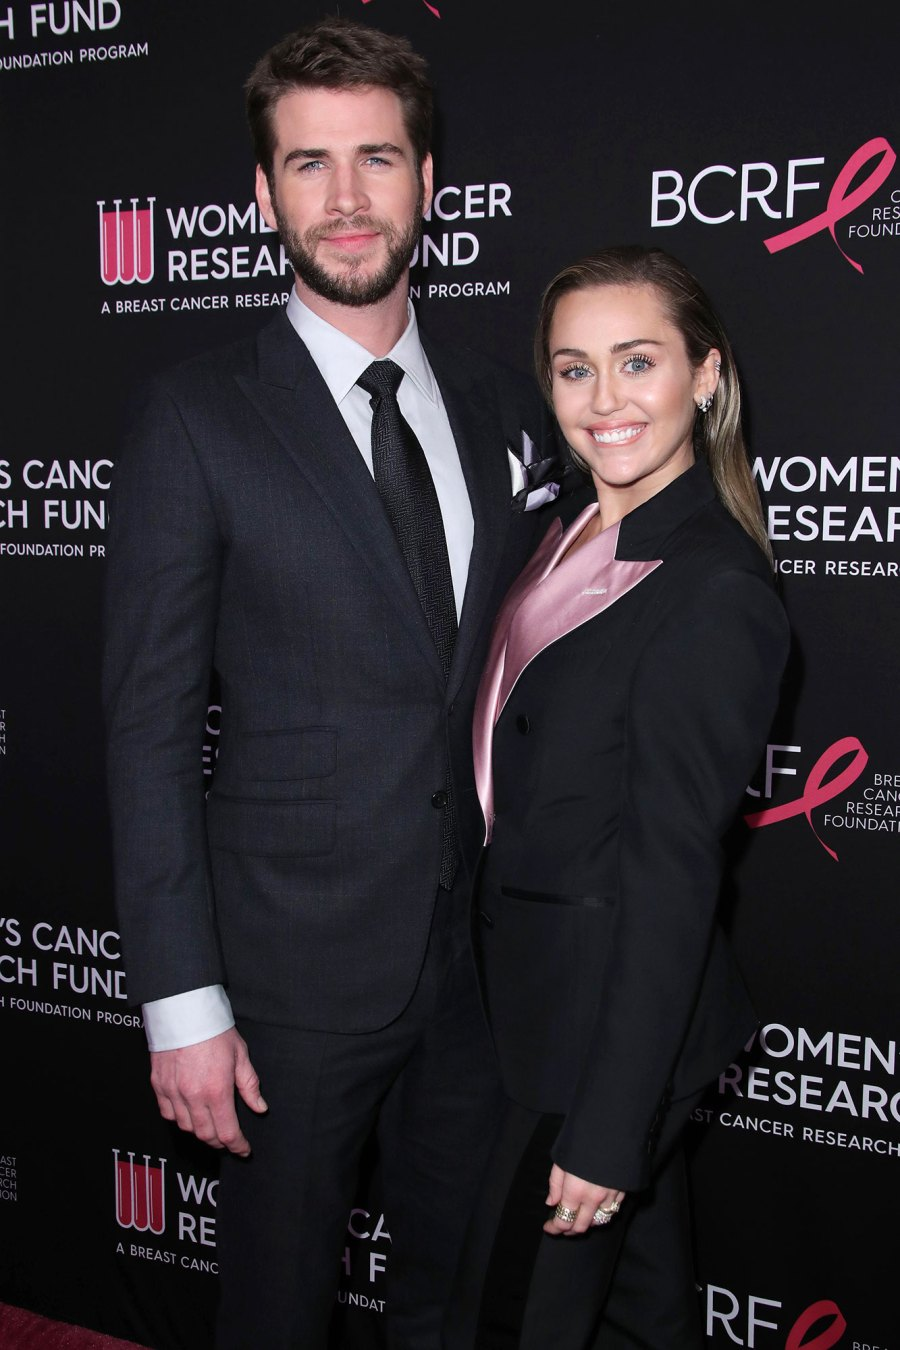 Miley Cyrus and Liam Hemsworth Hollywood Couples Who Called Off Their Engagement